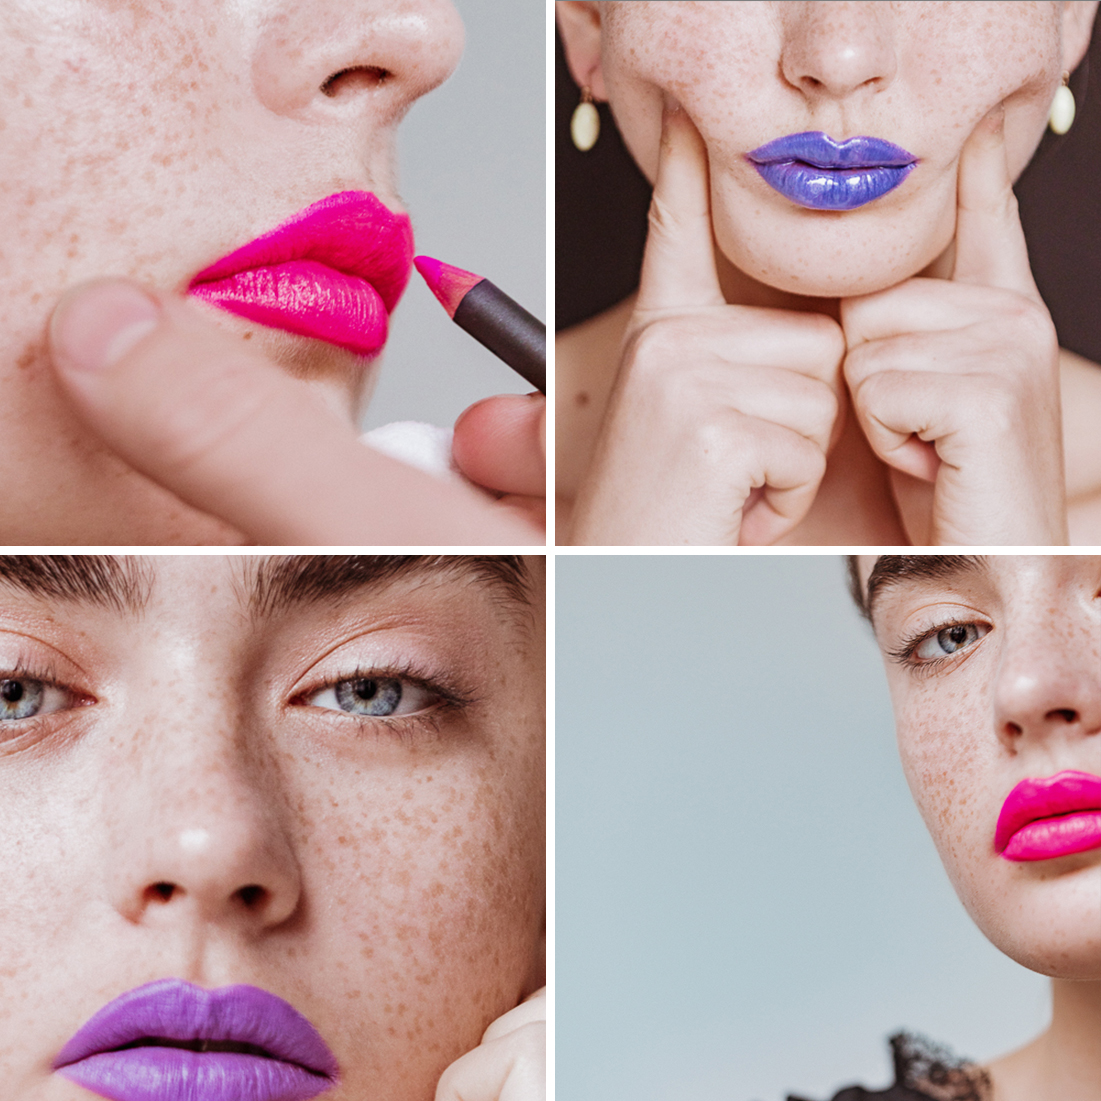 Bold Lipstick Is Hot NewAccessory